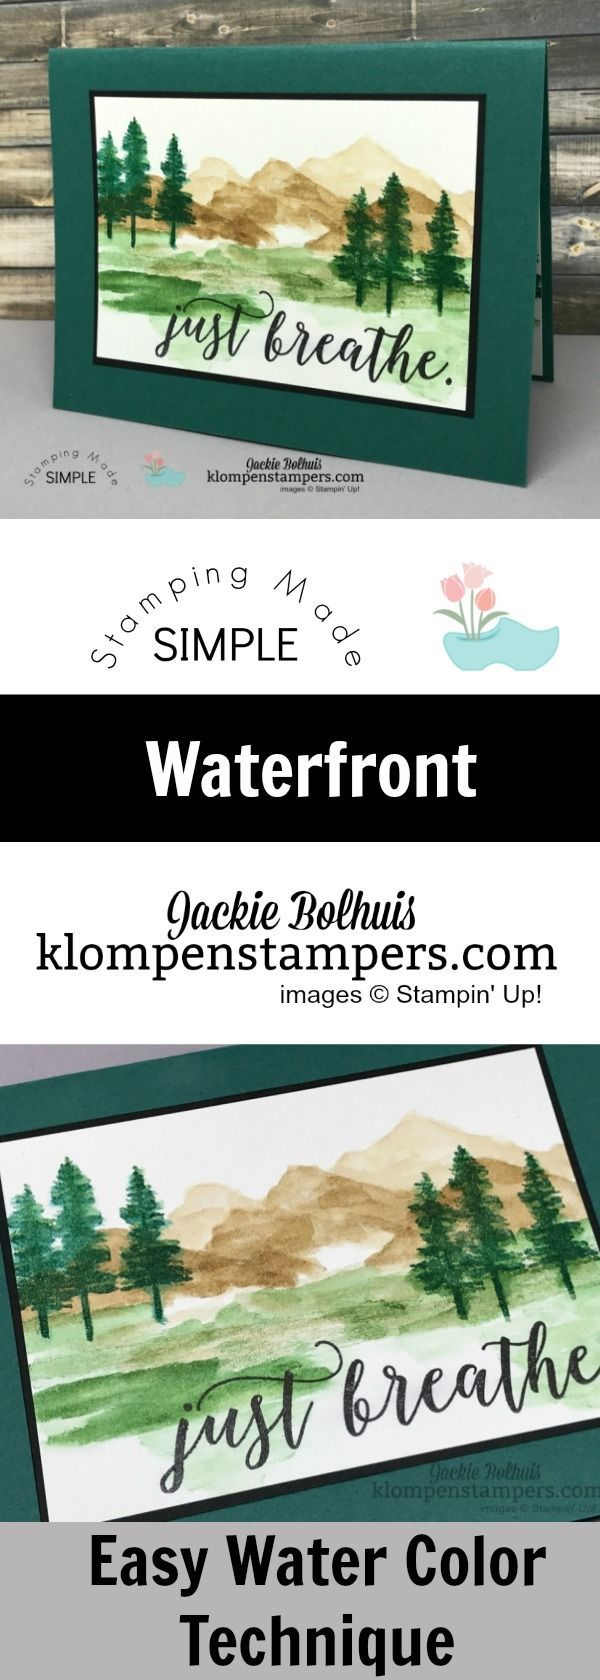 Learn an easy Watercoloring technique using Waterfront Stamp Set. Easy to follow Video instructions!